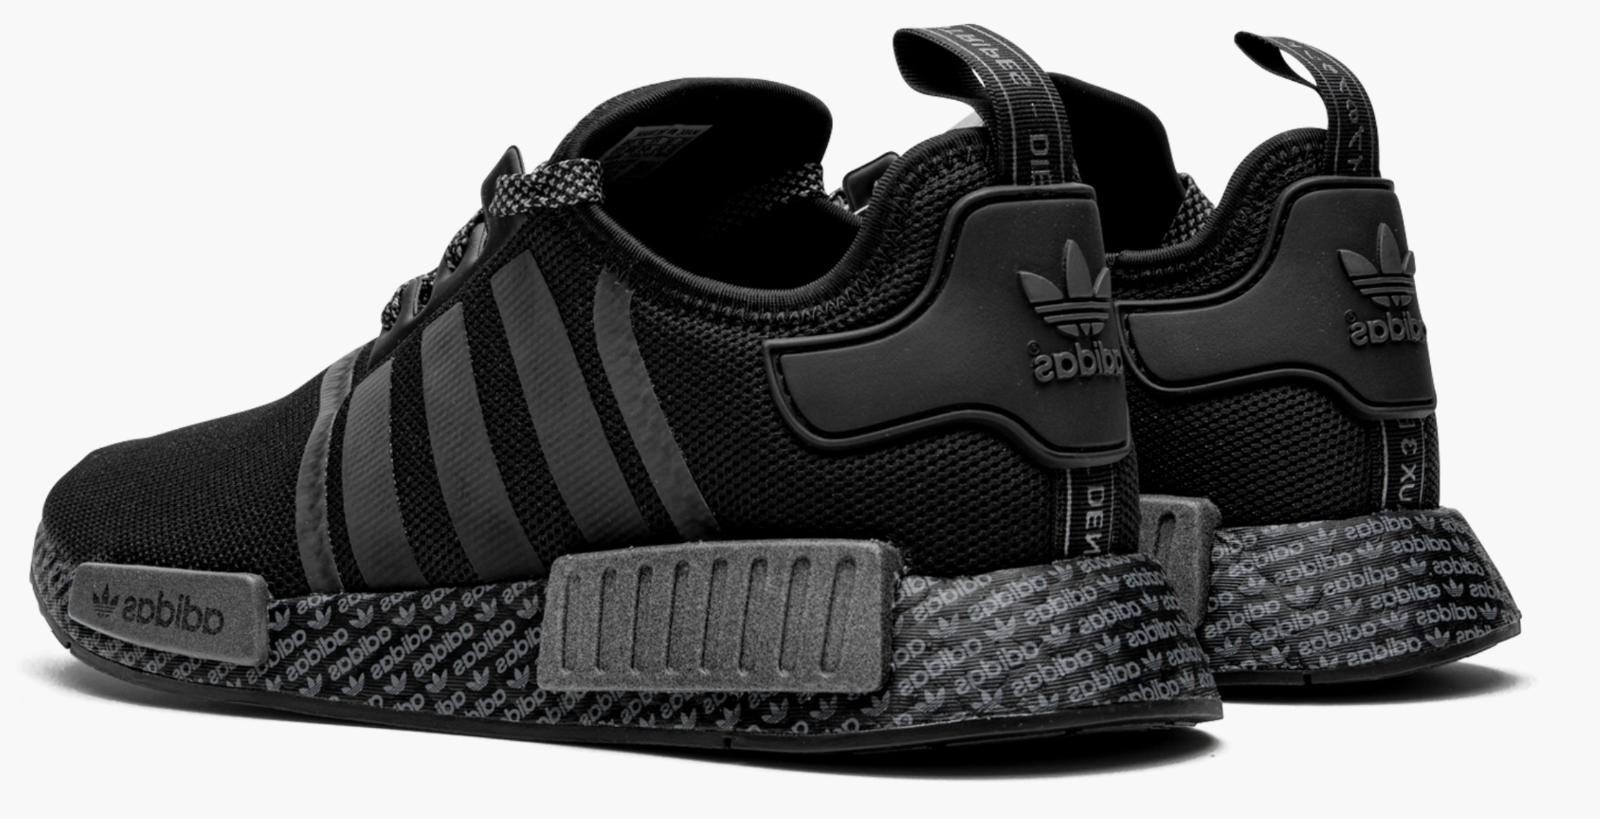 New ADIDAS BOOST casual shoes sizes